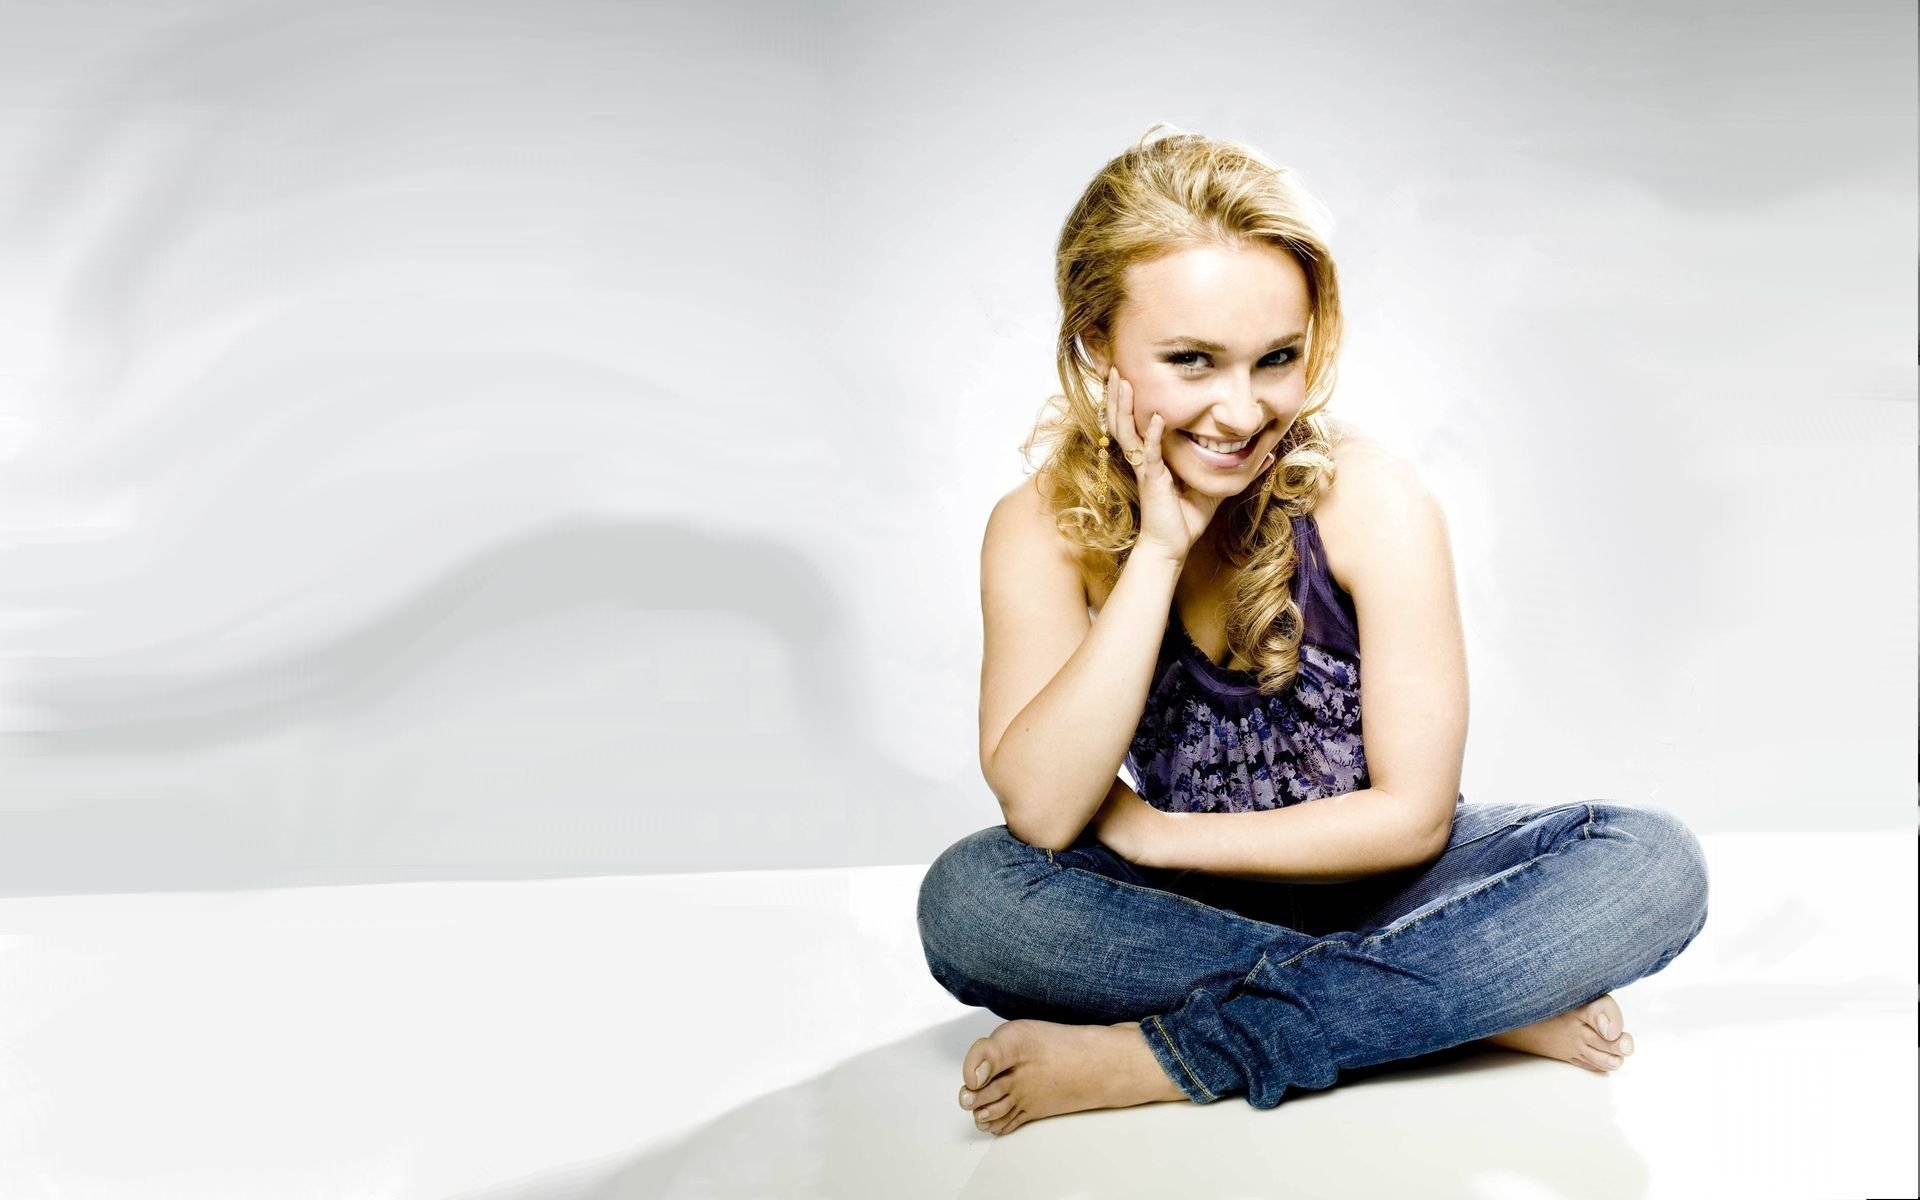 Celebrity - Hayden Panettiere  Wallpaper